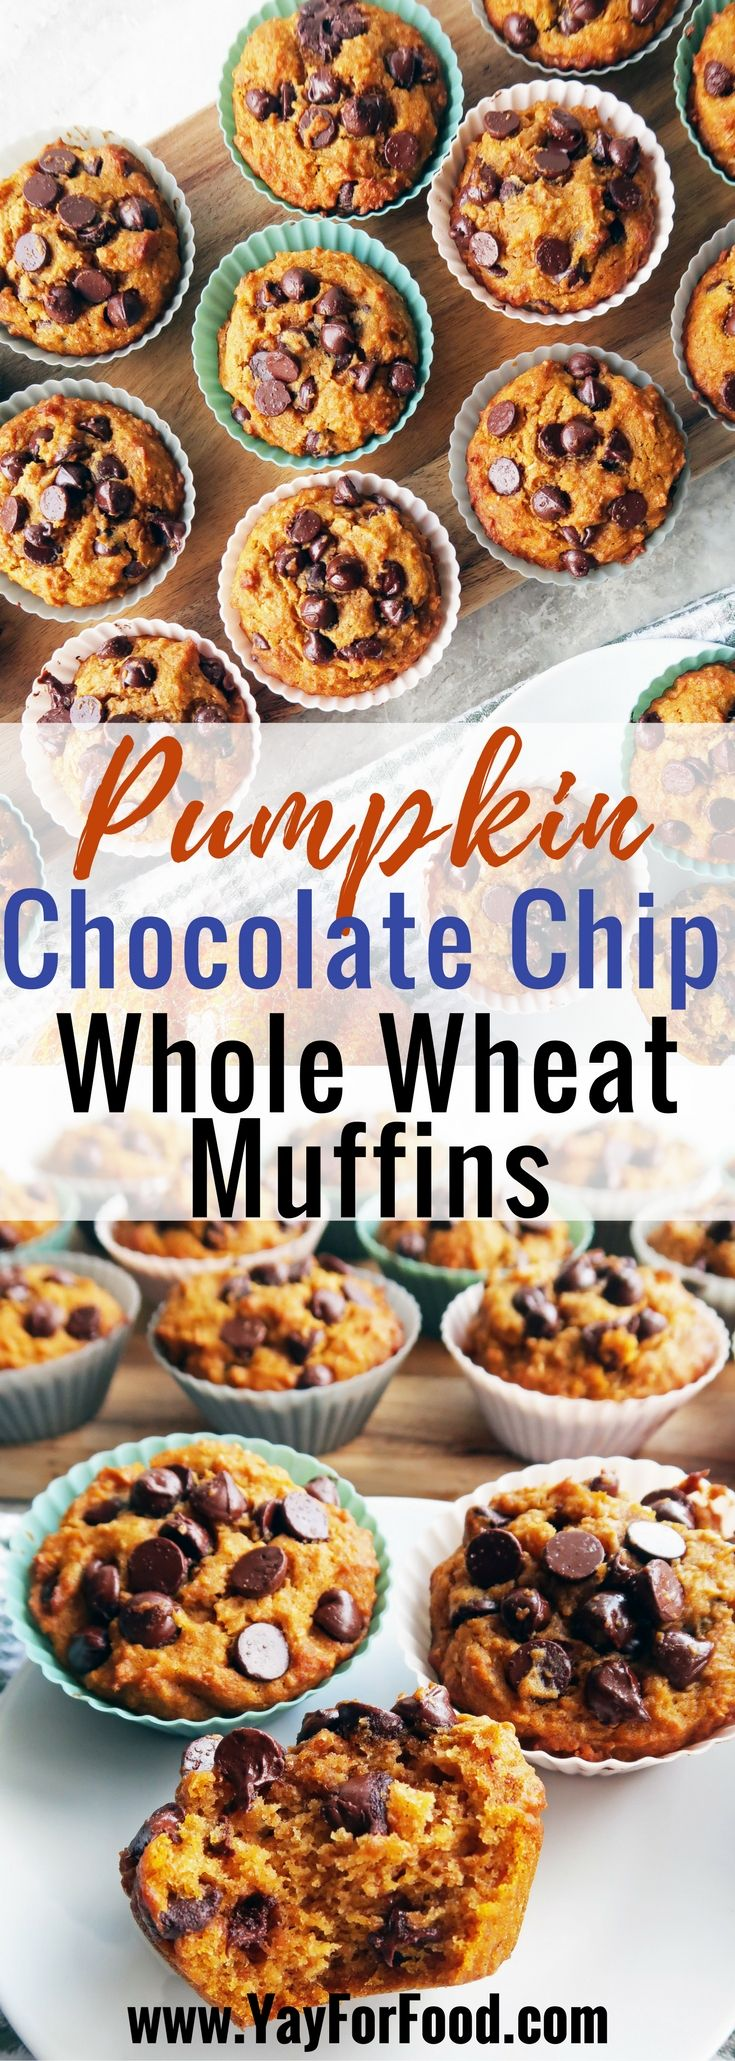 A tasty dessert that's perfect for fall! Delicious, soft, and full of chocolate chips, these pumpkin muffins are easy to make and ready in 30 minutes! desserts | snacks | sweets | vegetarian | fall recipes | pumpkin recipes | breakfast